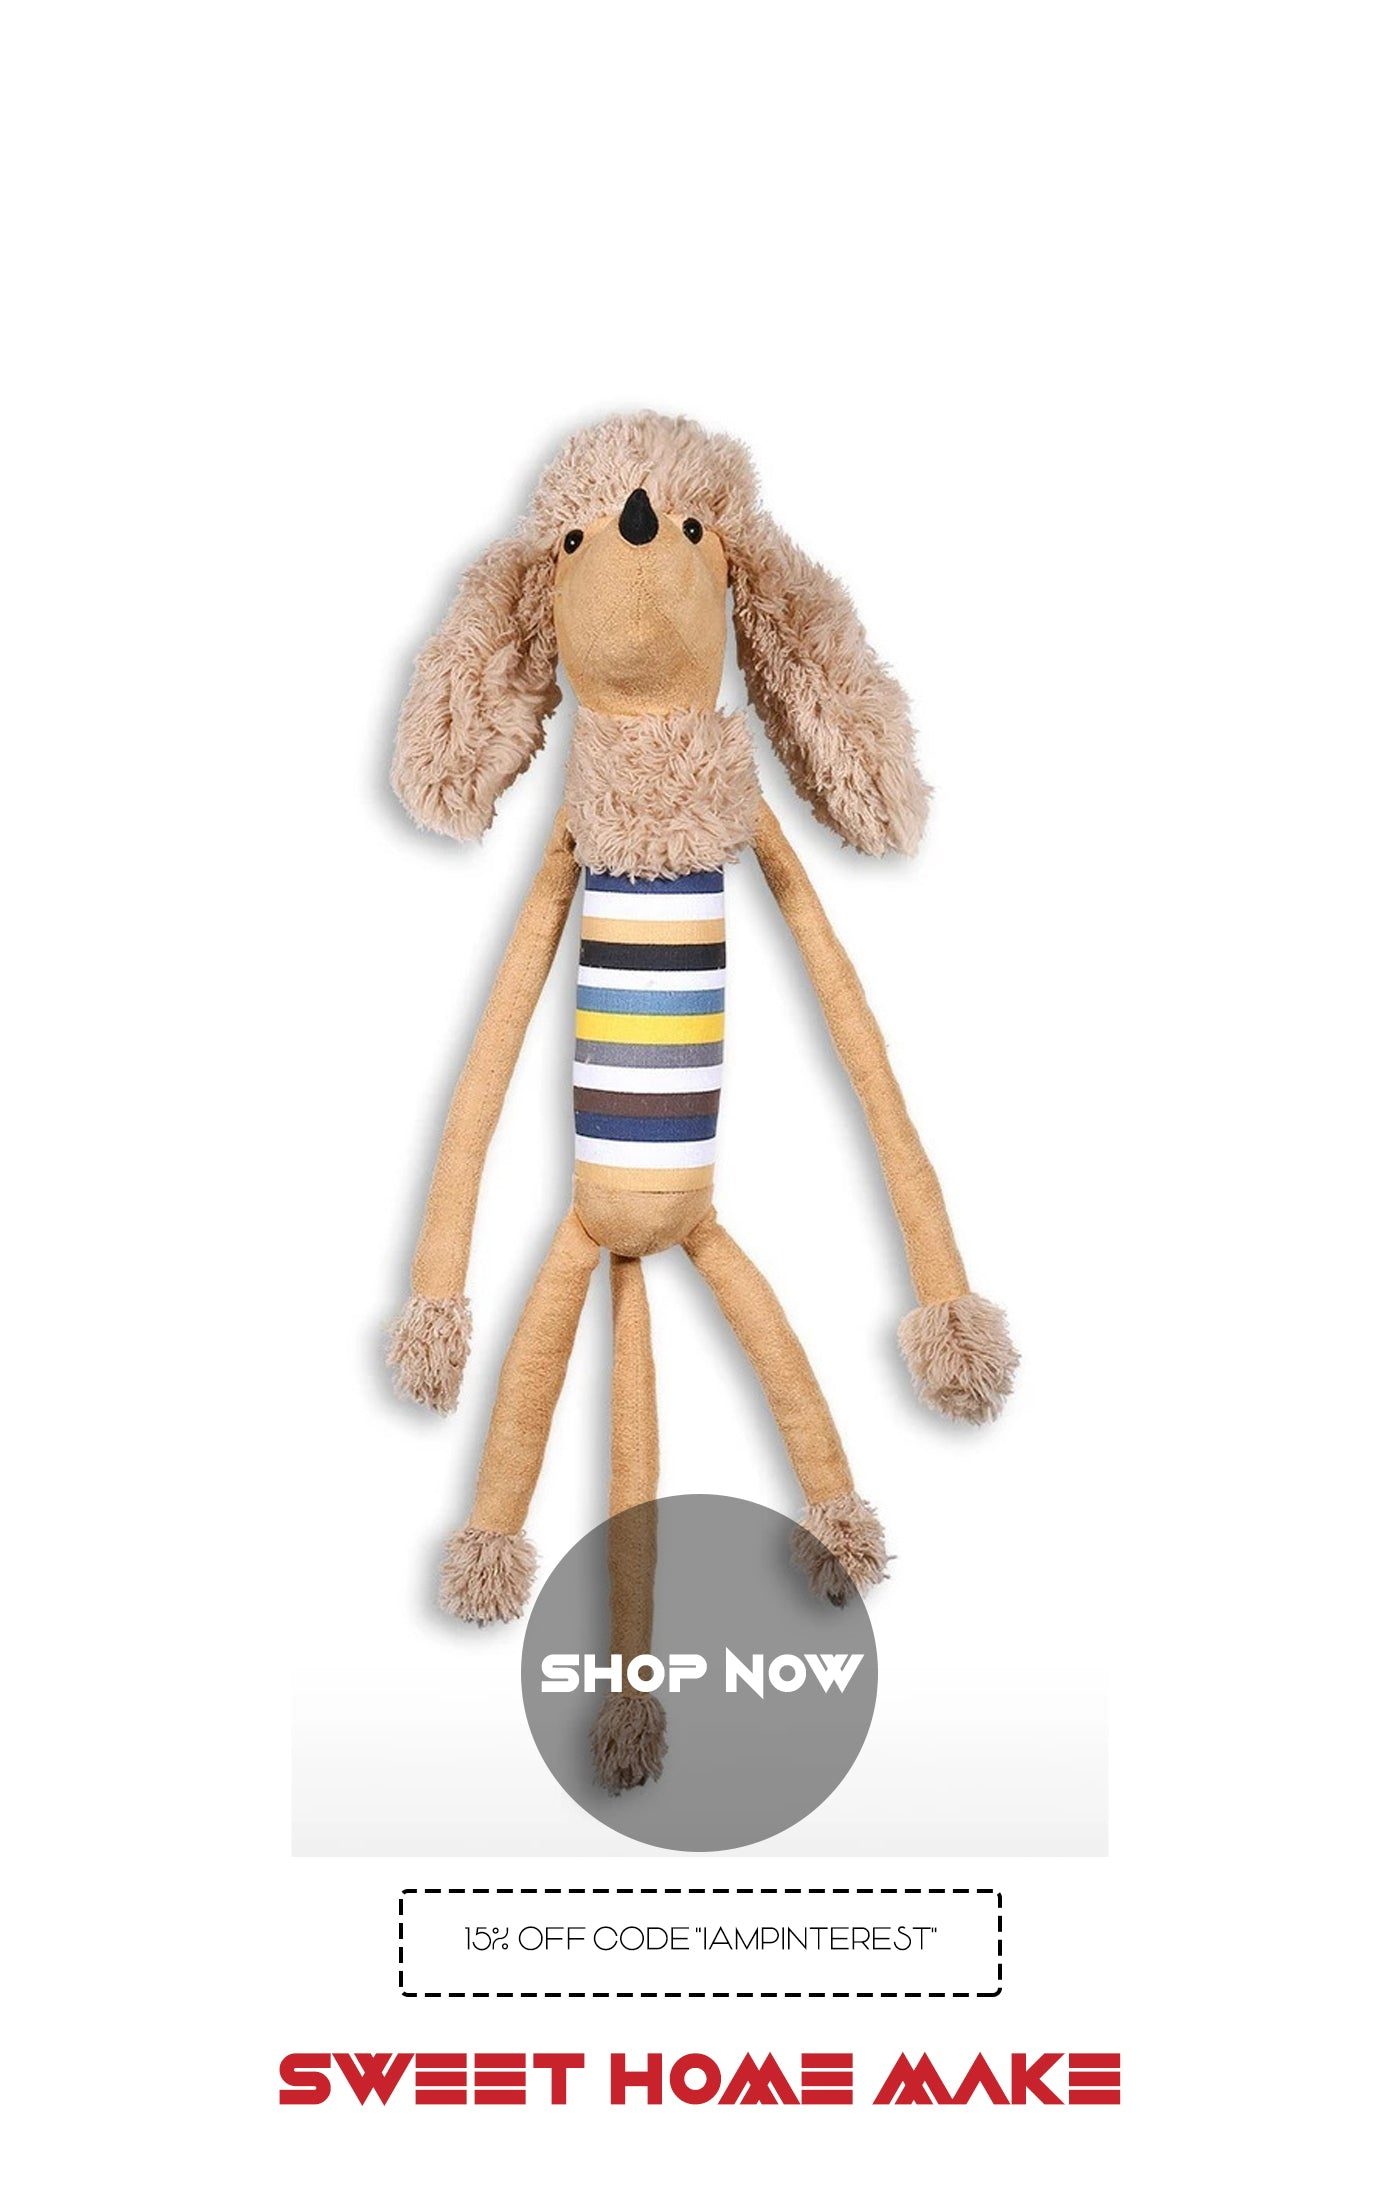 Puppy and Dog Toys For Nursery and Kids as Online Store